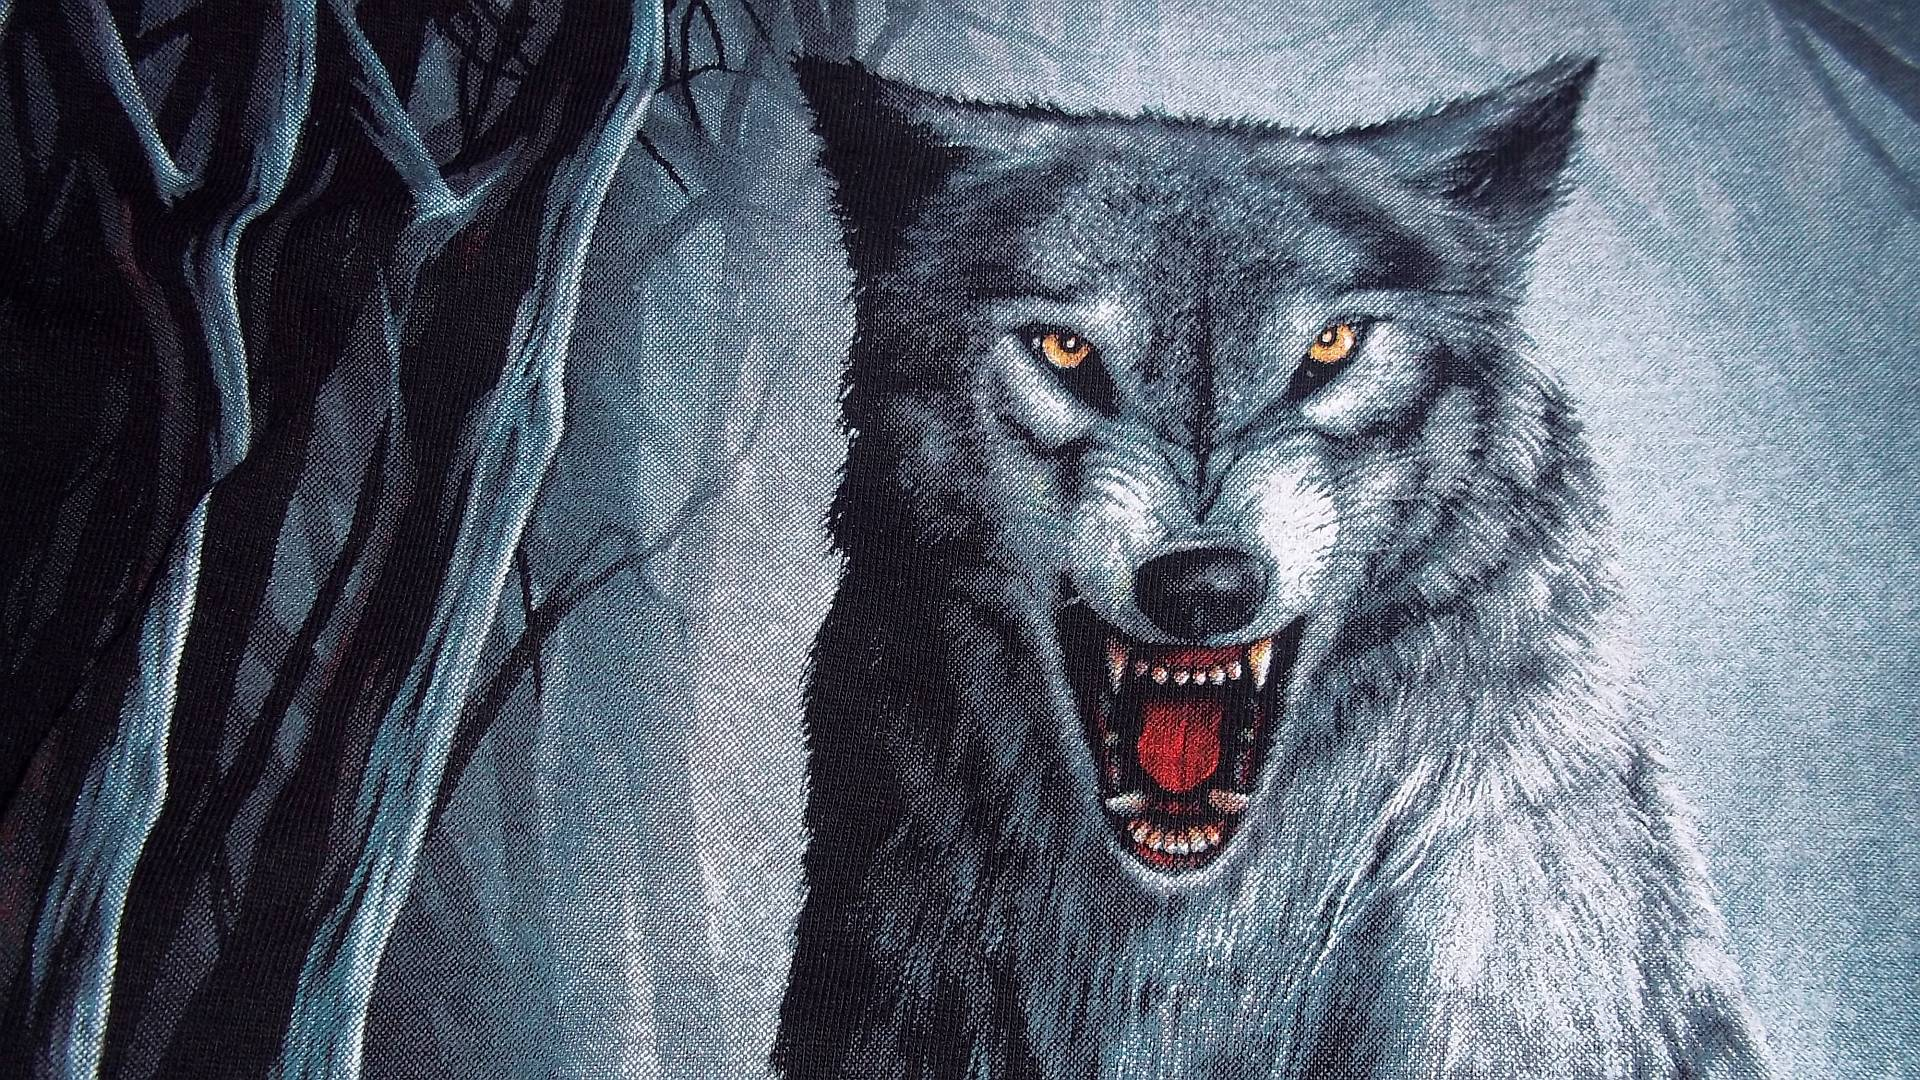 Animal Wolf Wallpaper 1920x1080 Px Free Download Wallpaperest Id